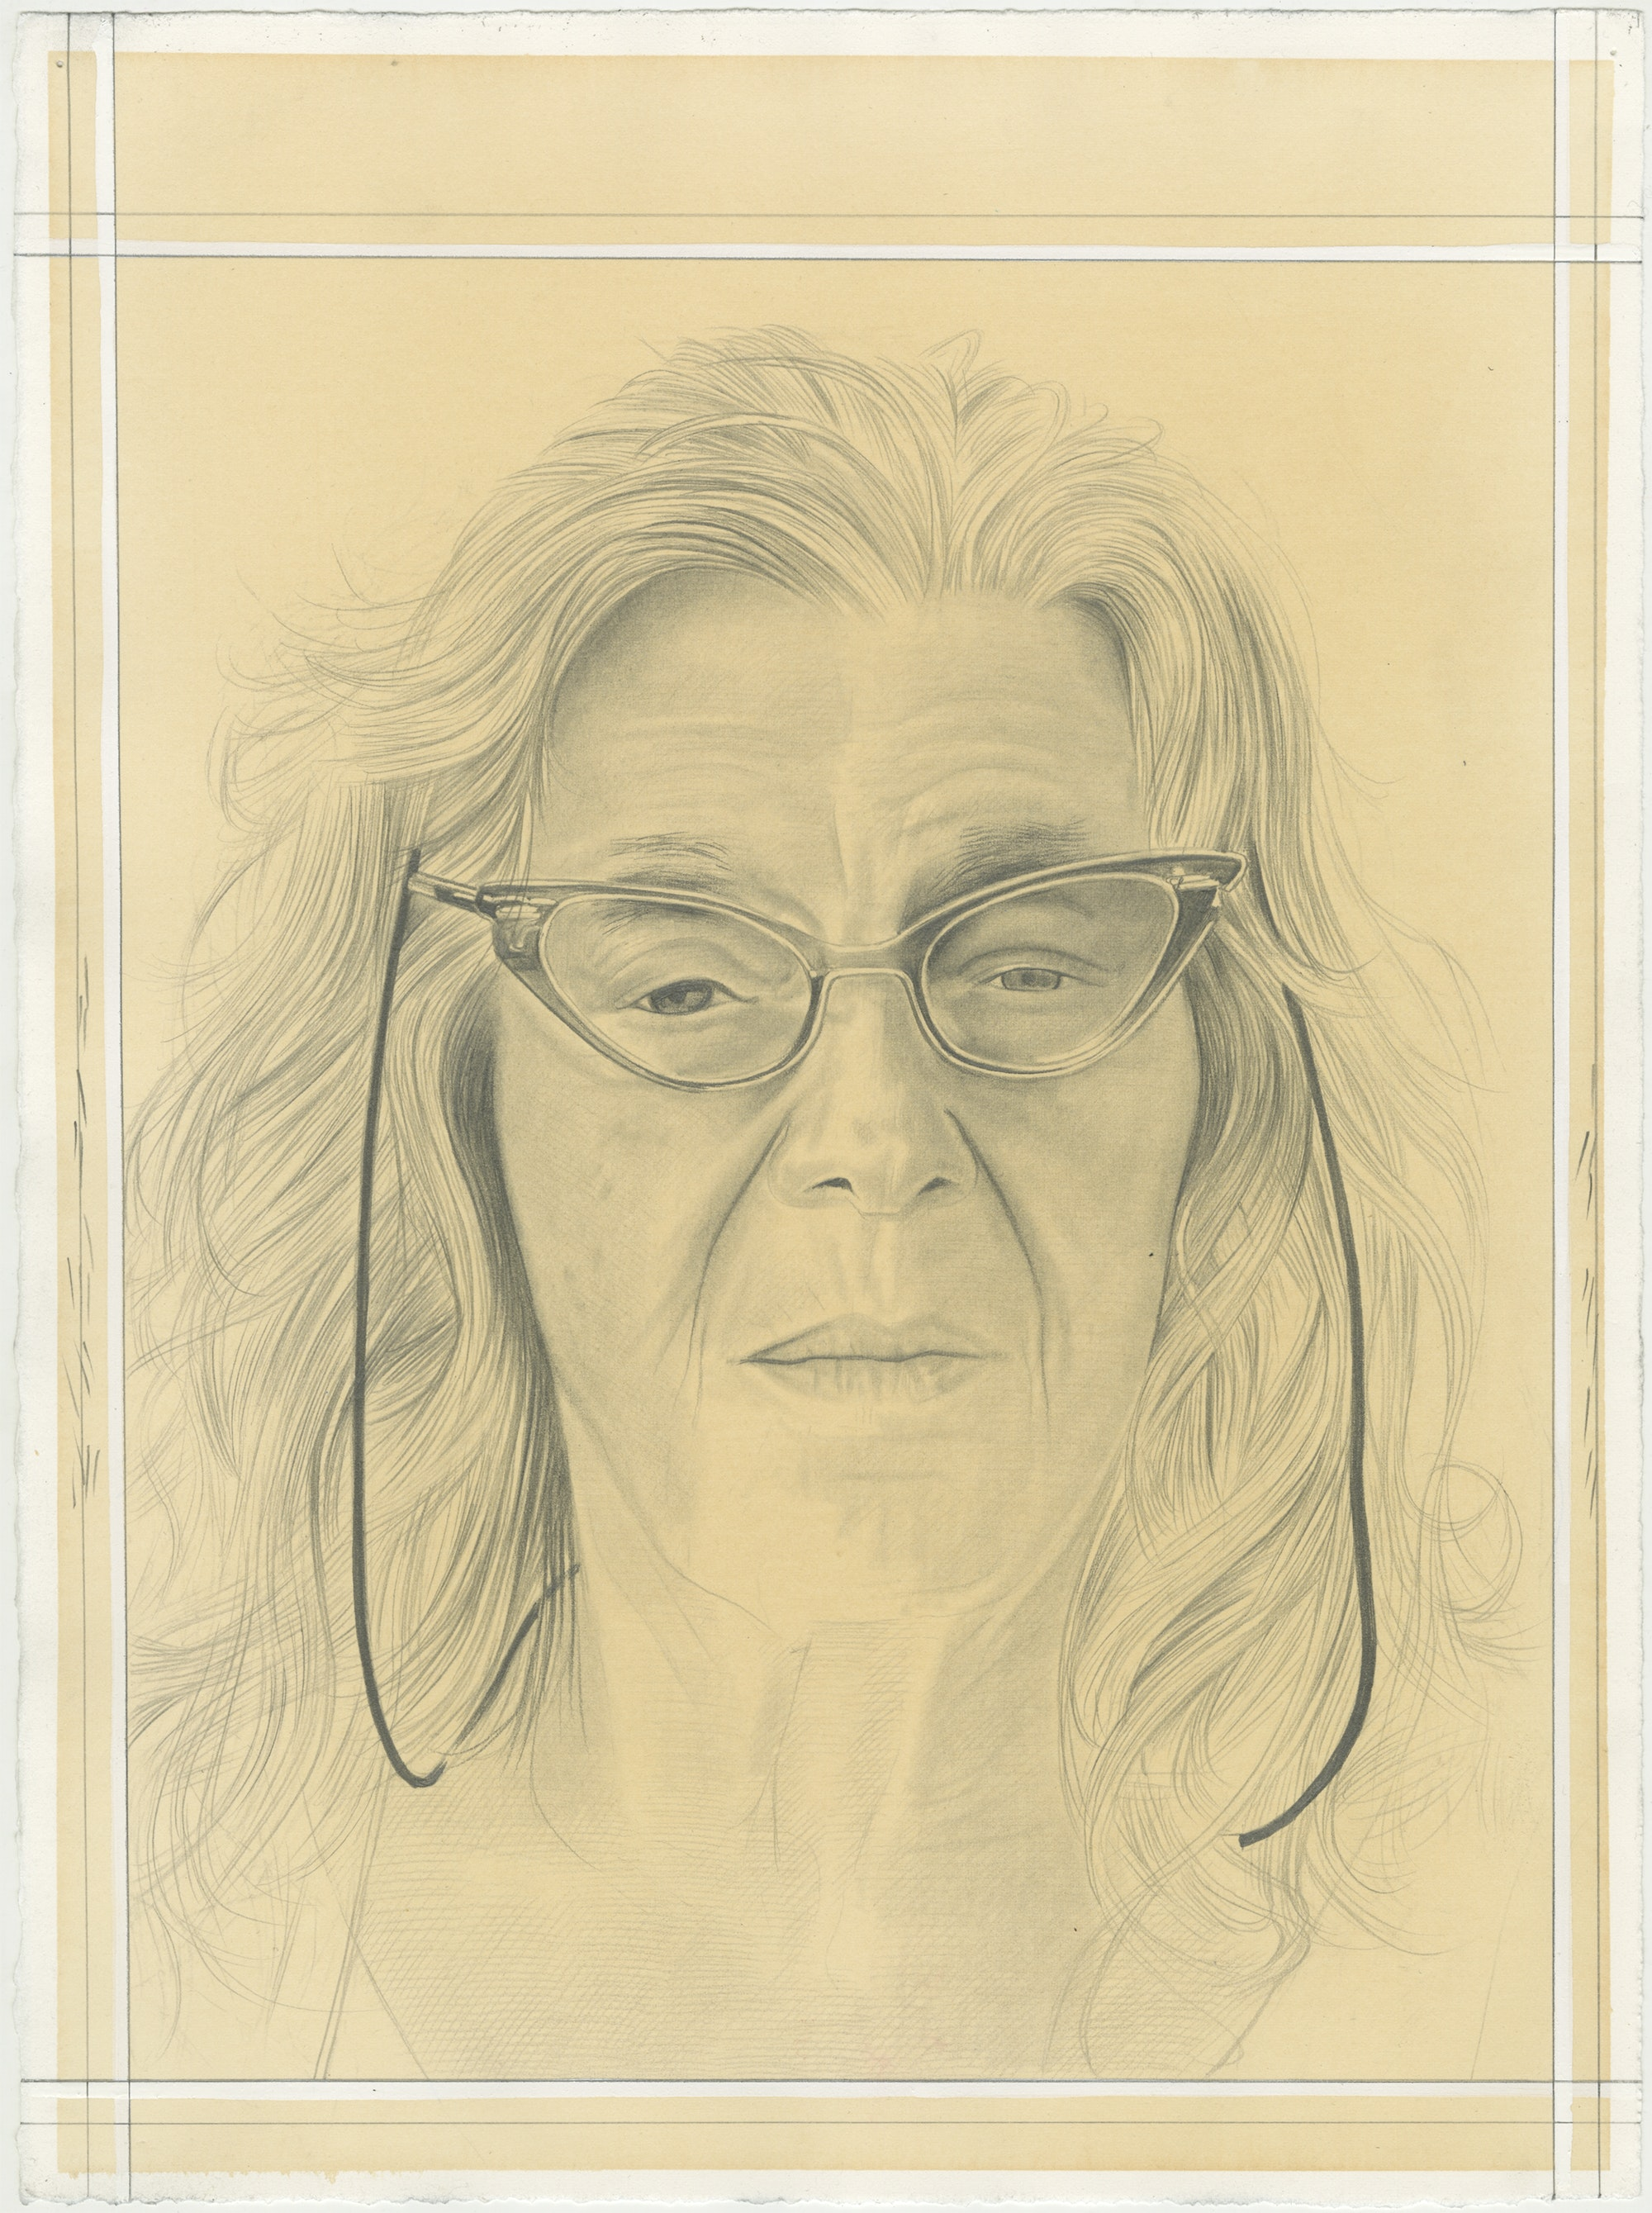 Portrait of Jo Baer, pencil on paper by Phong H. Bui.